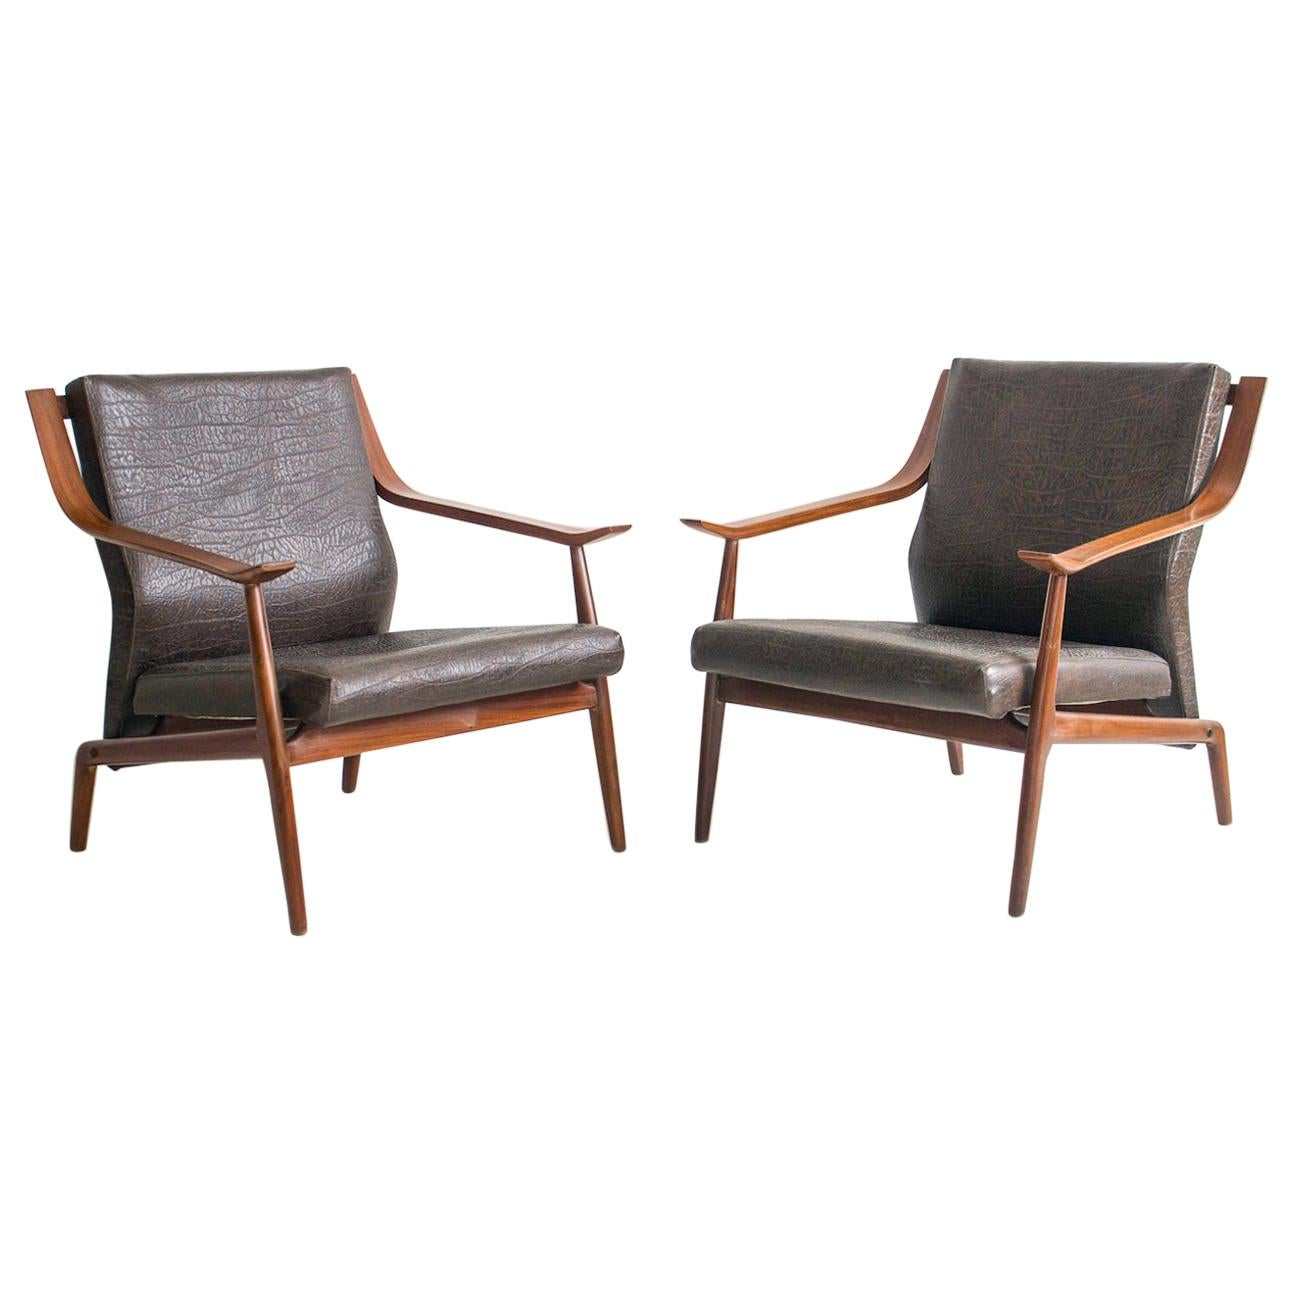 Pair of 1950s Italian Wooden Armchairs with Faux Leather Upholstery